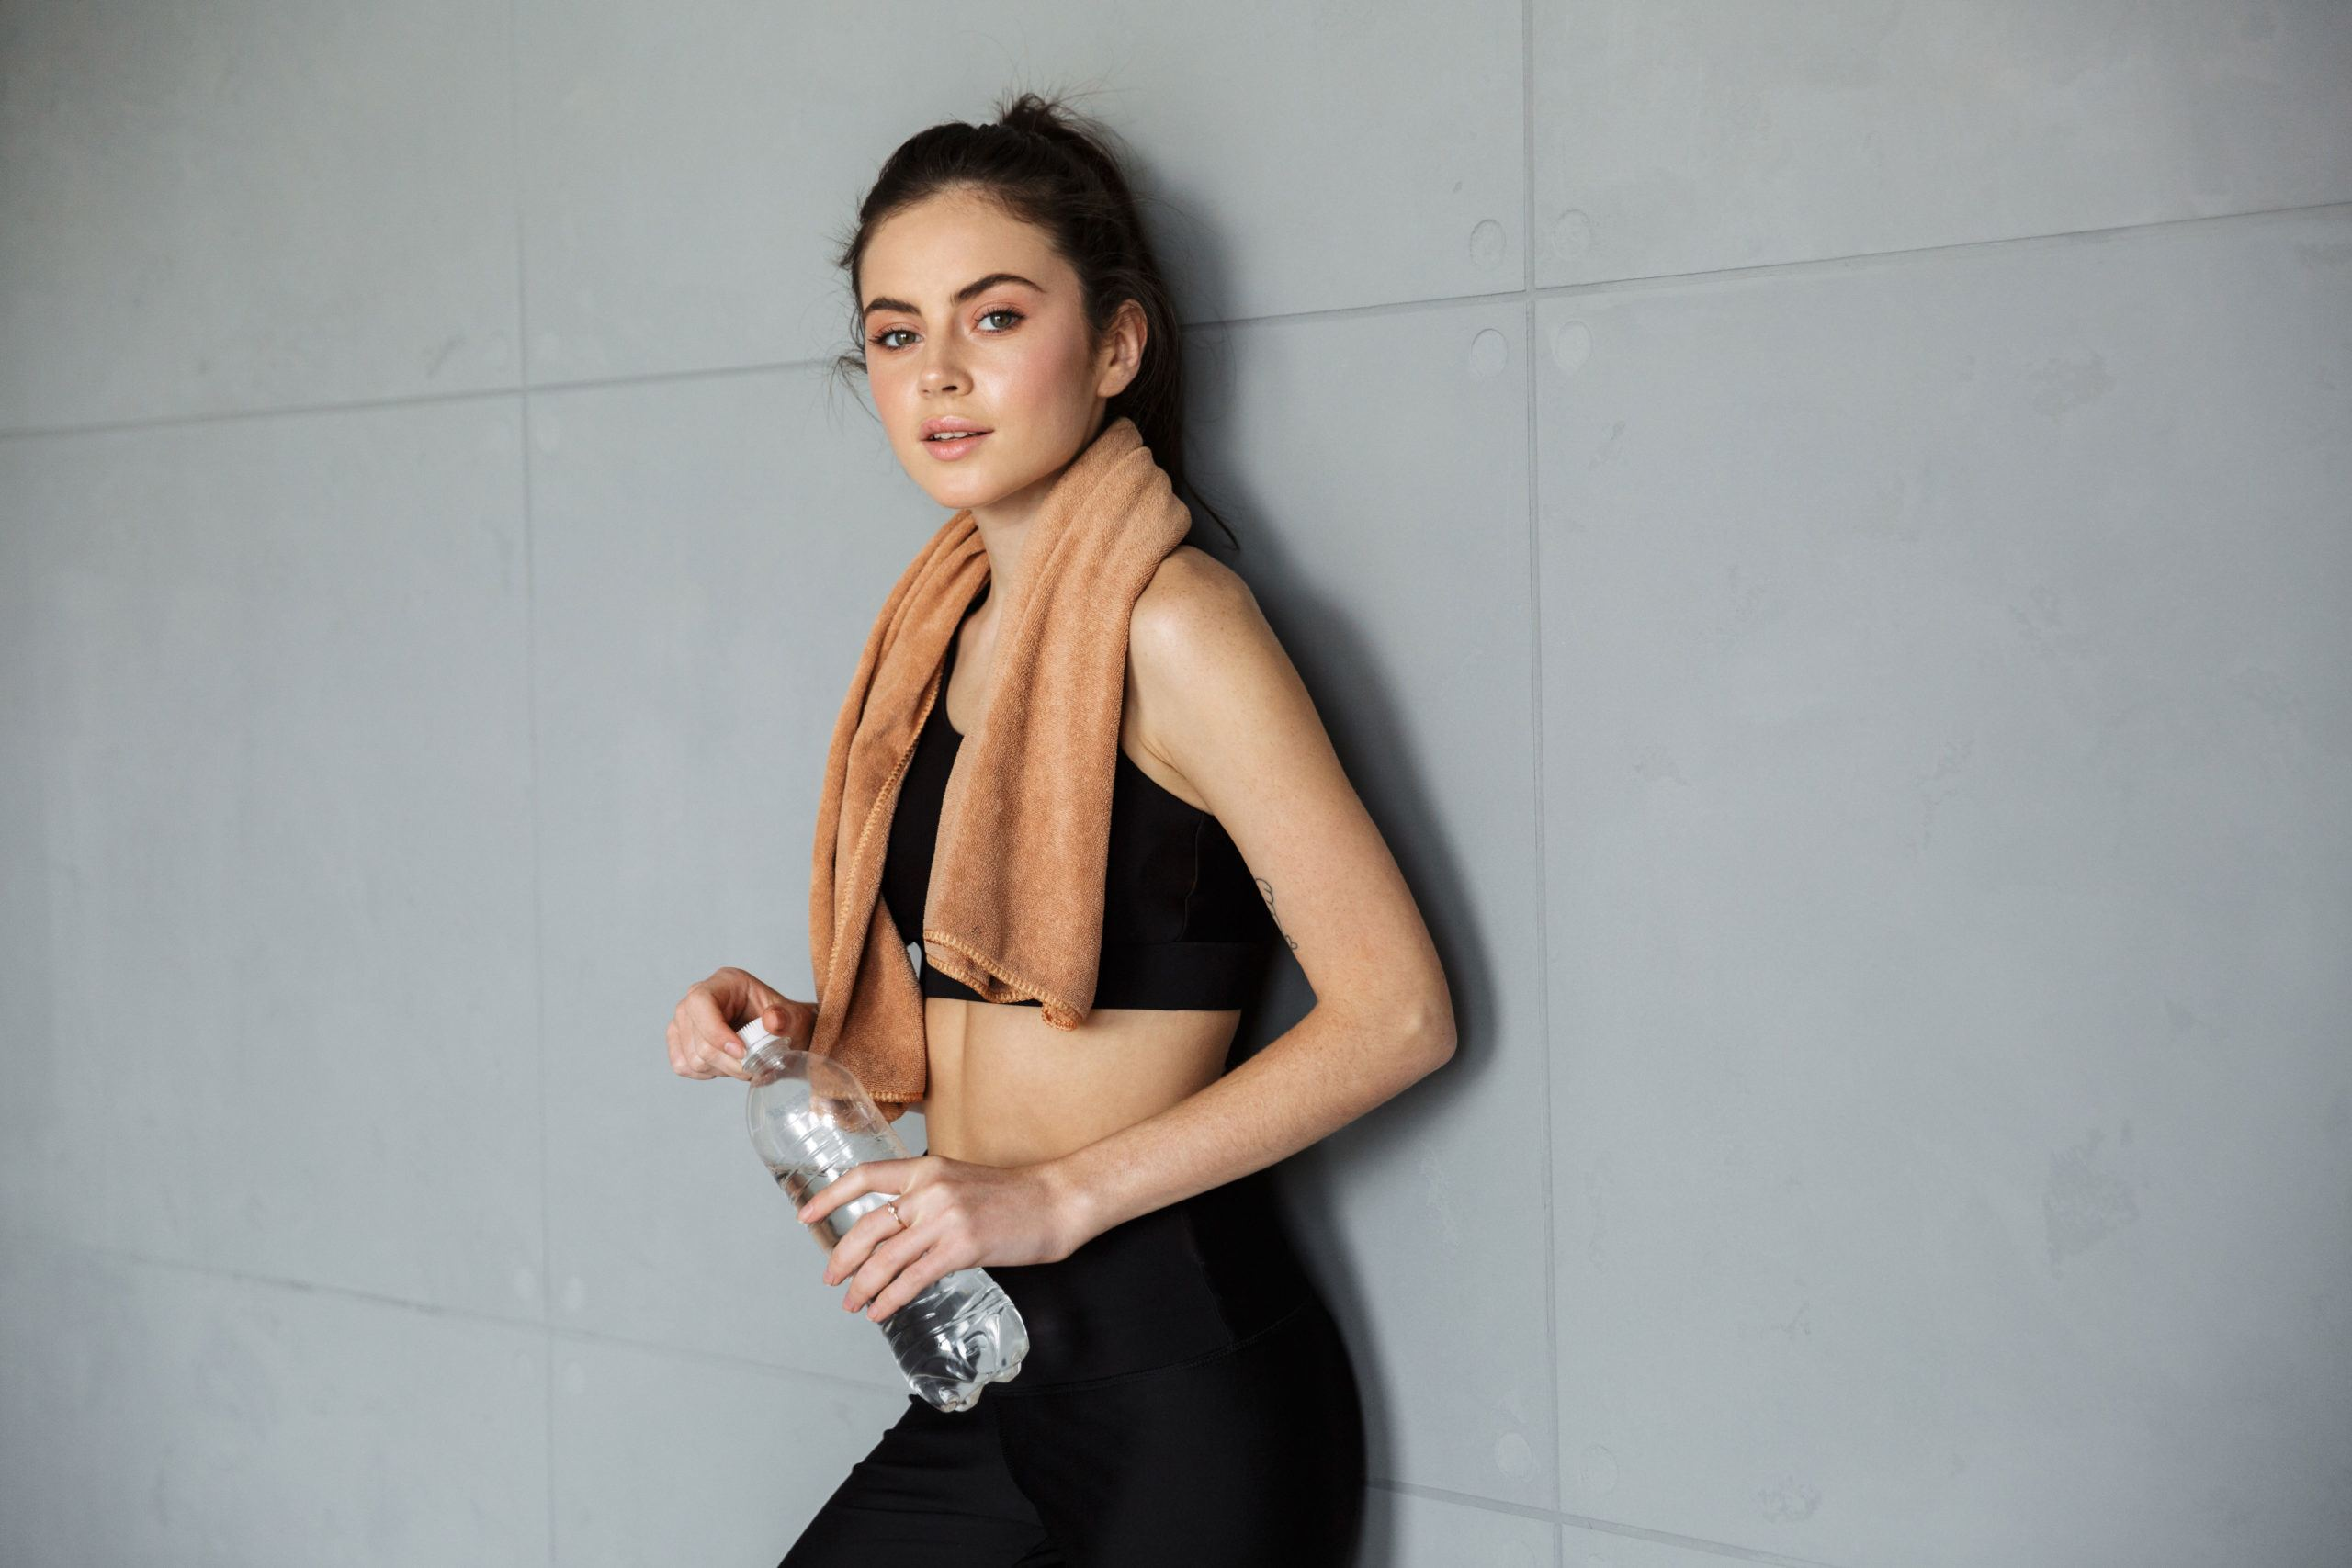 Woman with towel after hot yoga class